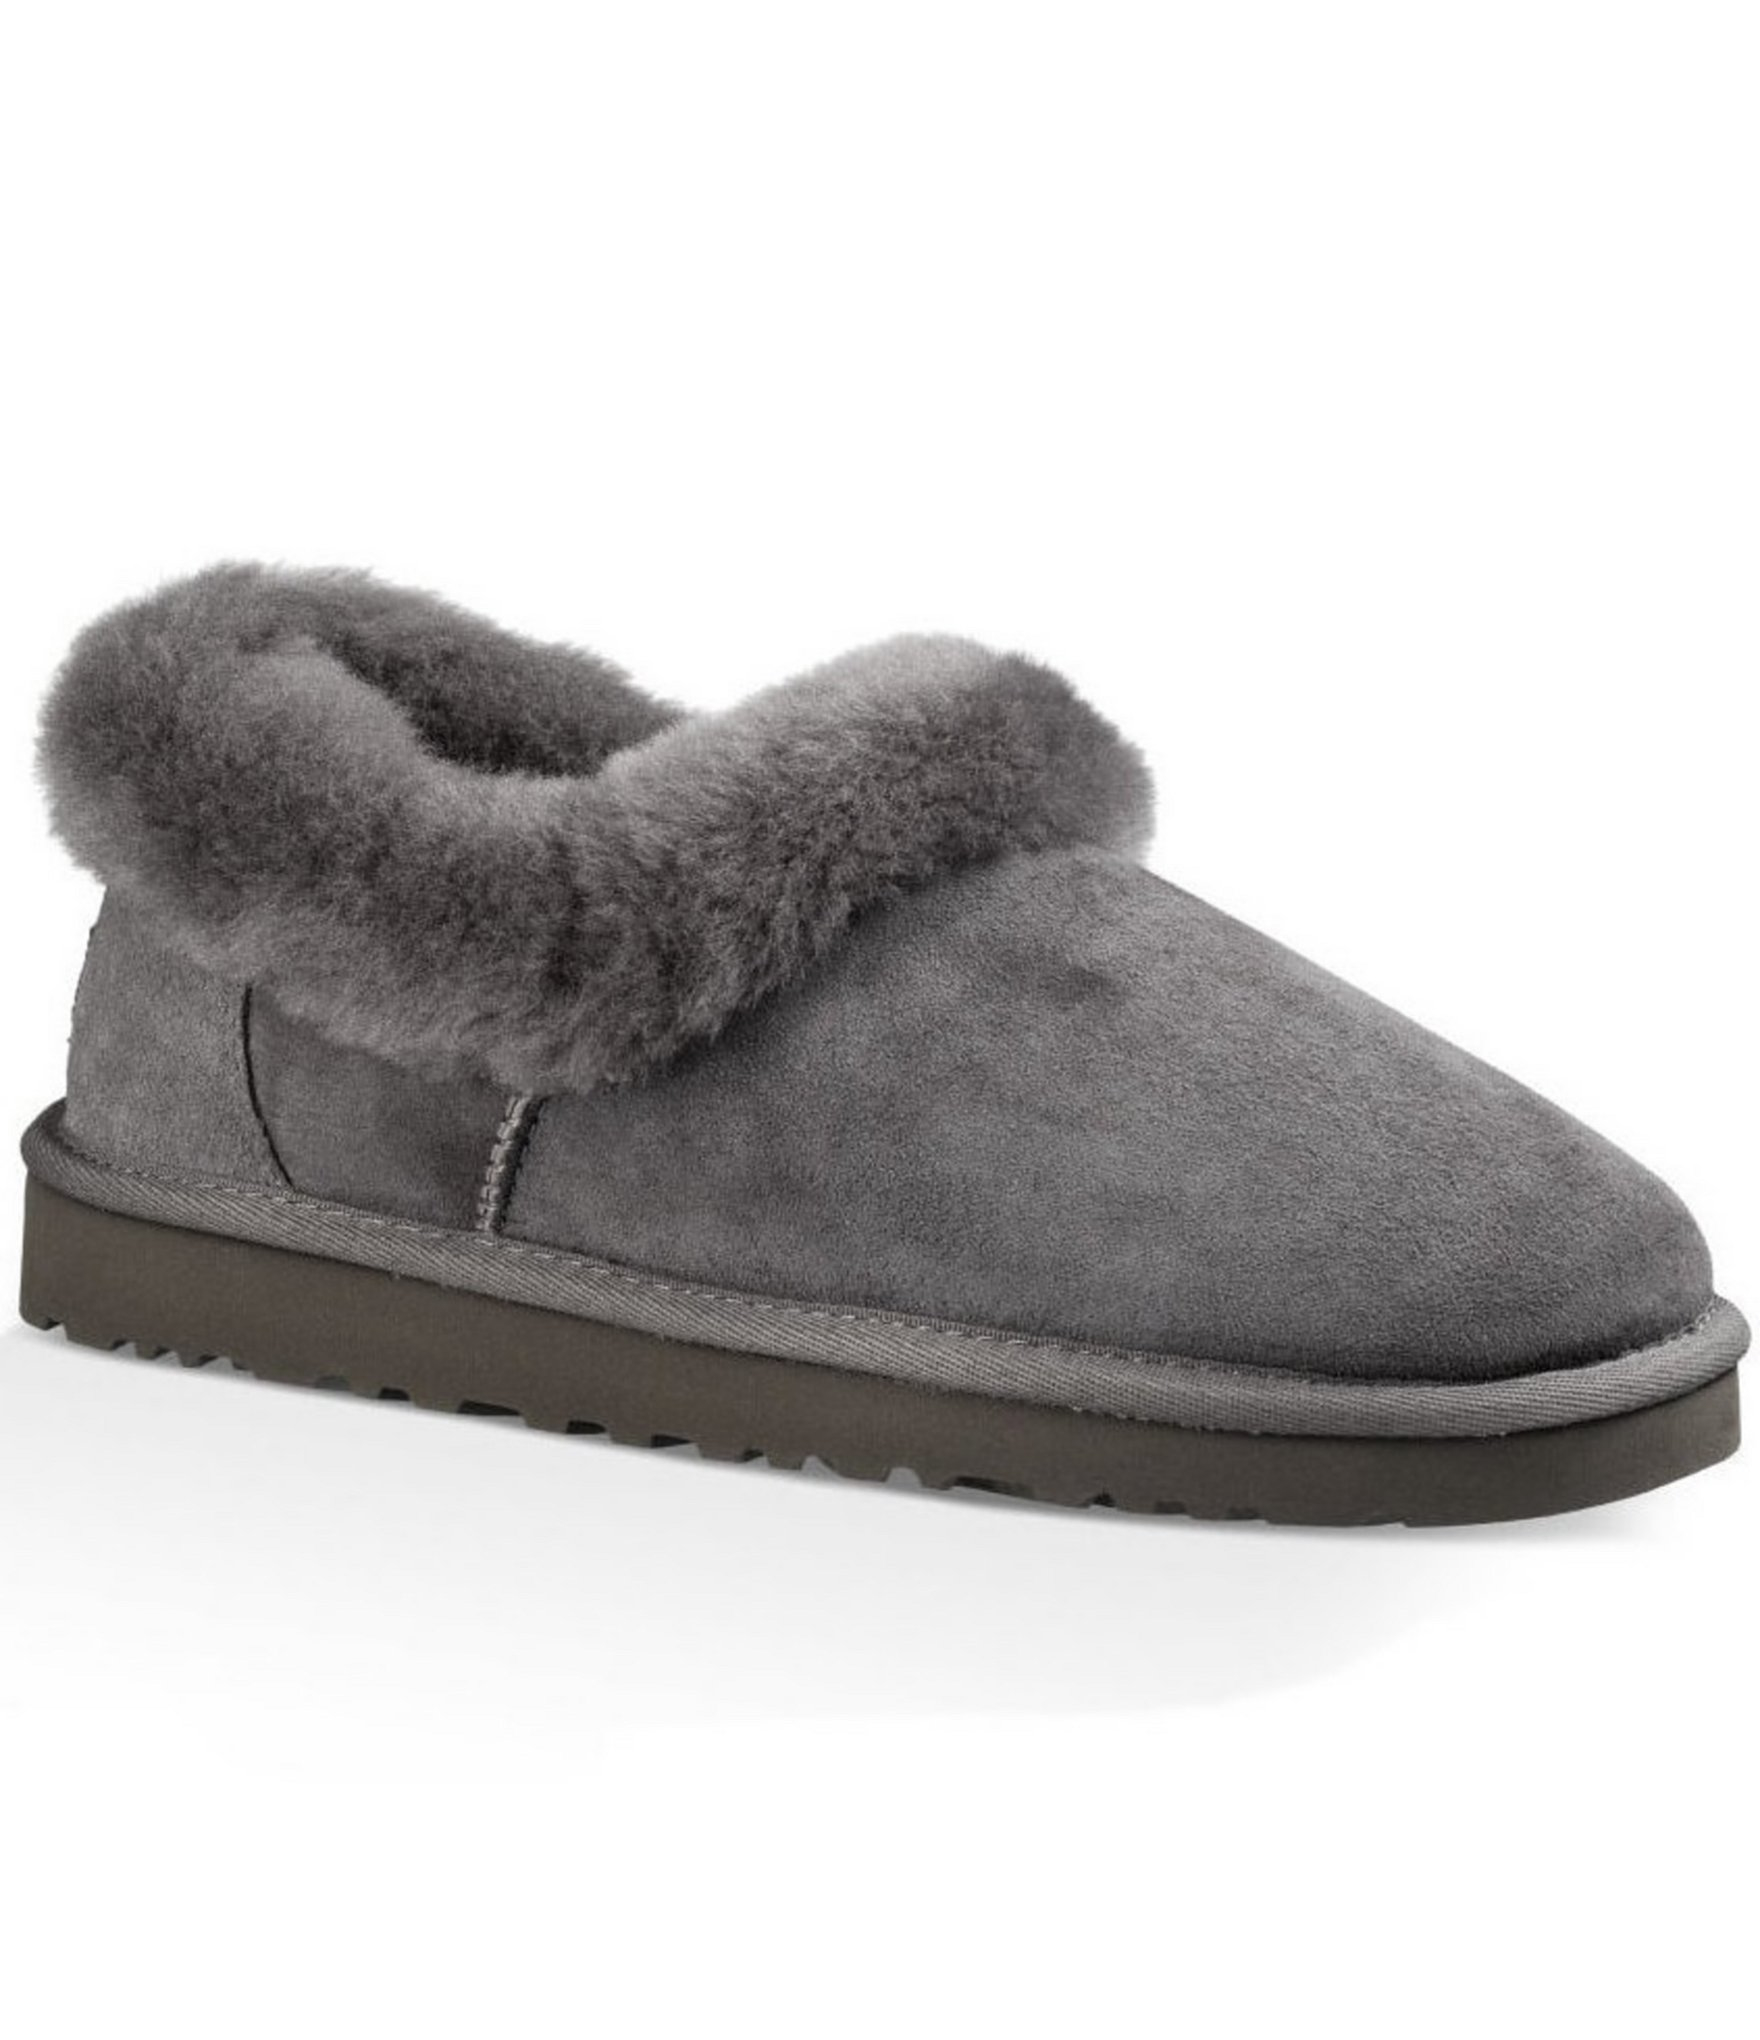 c5201ae242a Lyst - UGG ® Nita Slippers in Gray